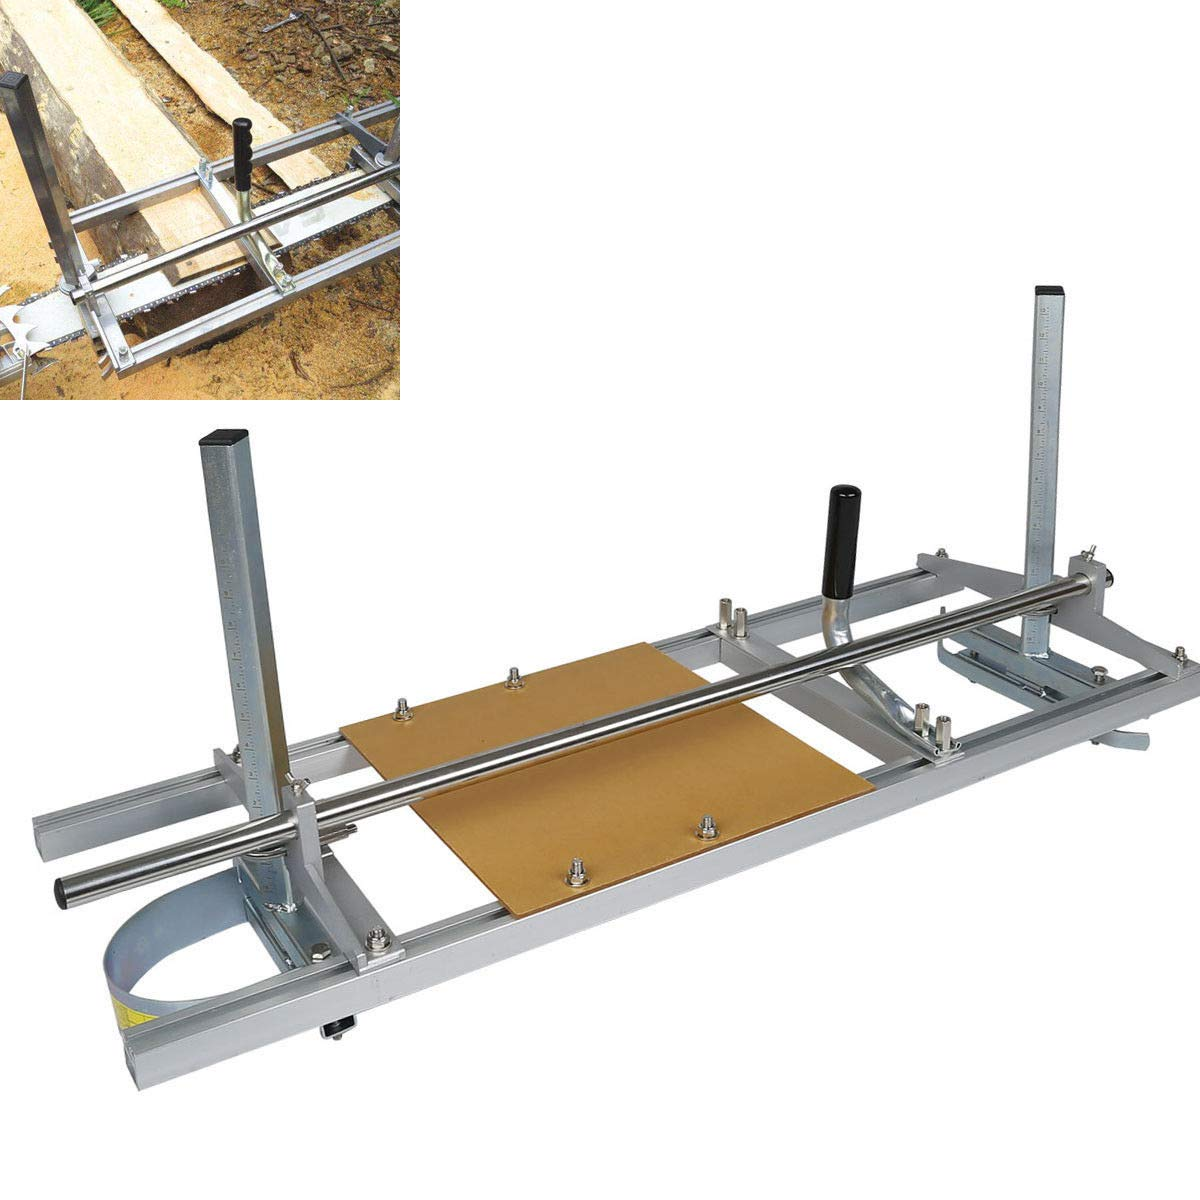 TC-Home 14'' - 36'' Chain Saw Mill Log Planking Lumber Cutting Portable Aluminium & Steel for Builders/Woodworkers